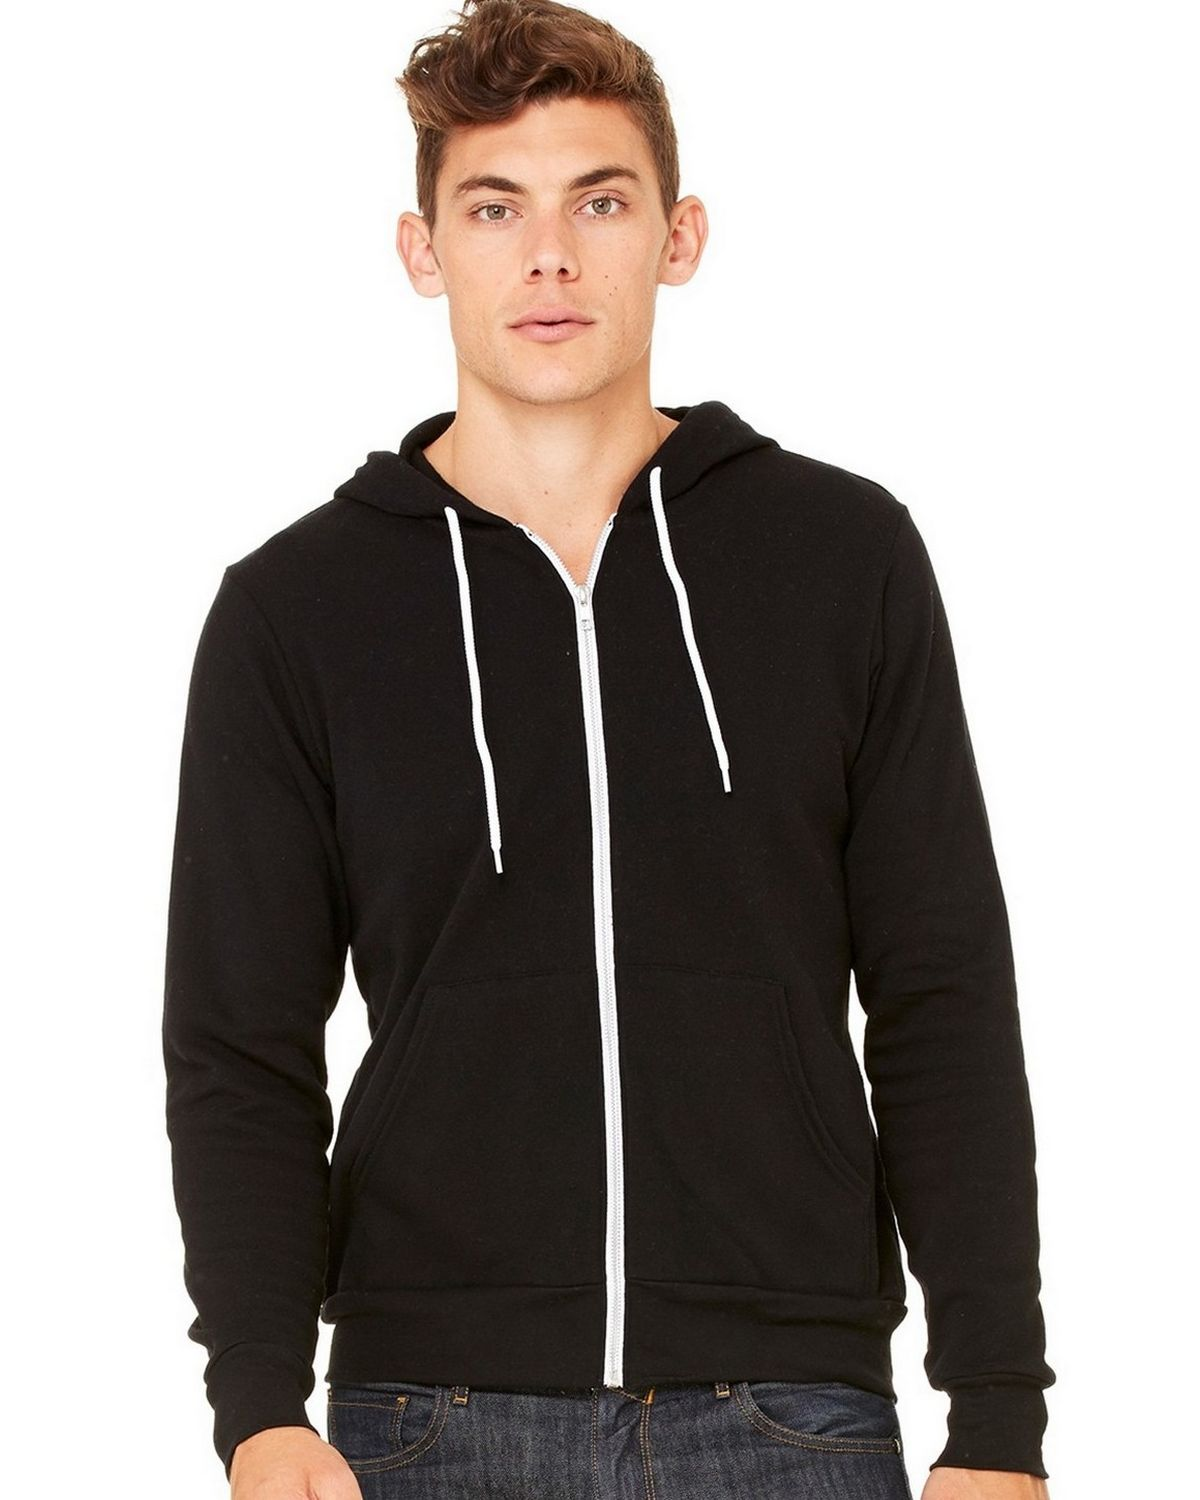 Bella + Canvas C3739 Unisex Full-Zip Hoodie - Kelly - S C3739